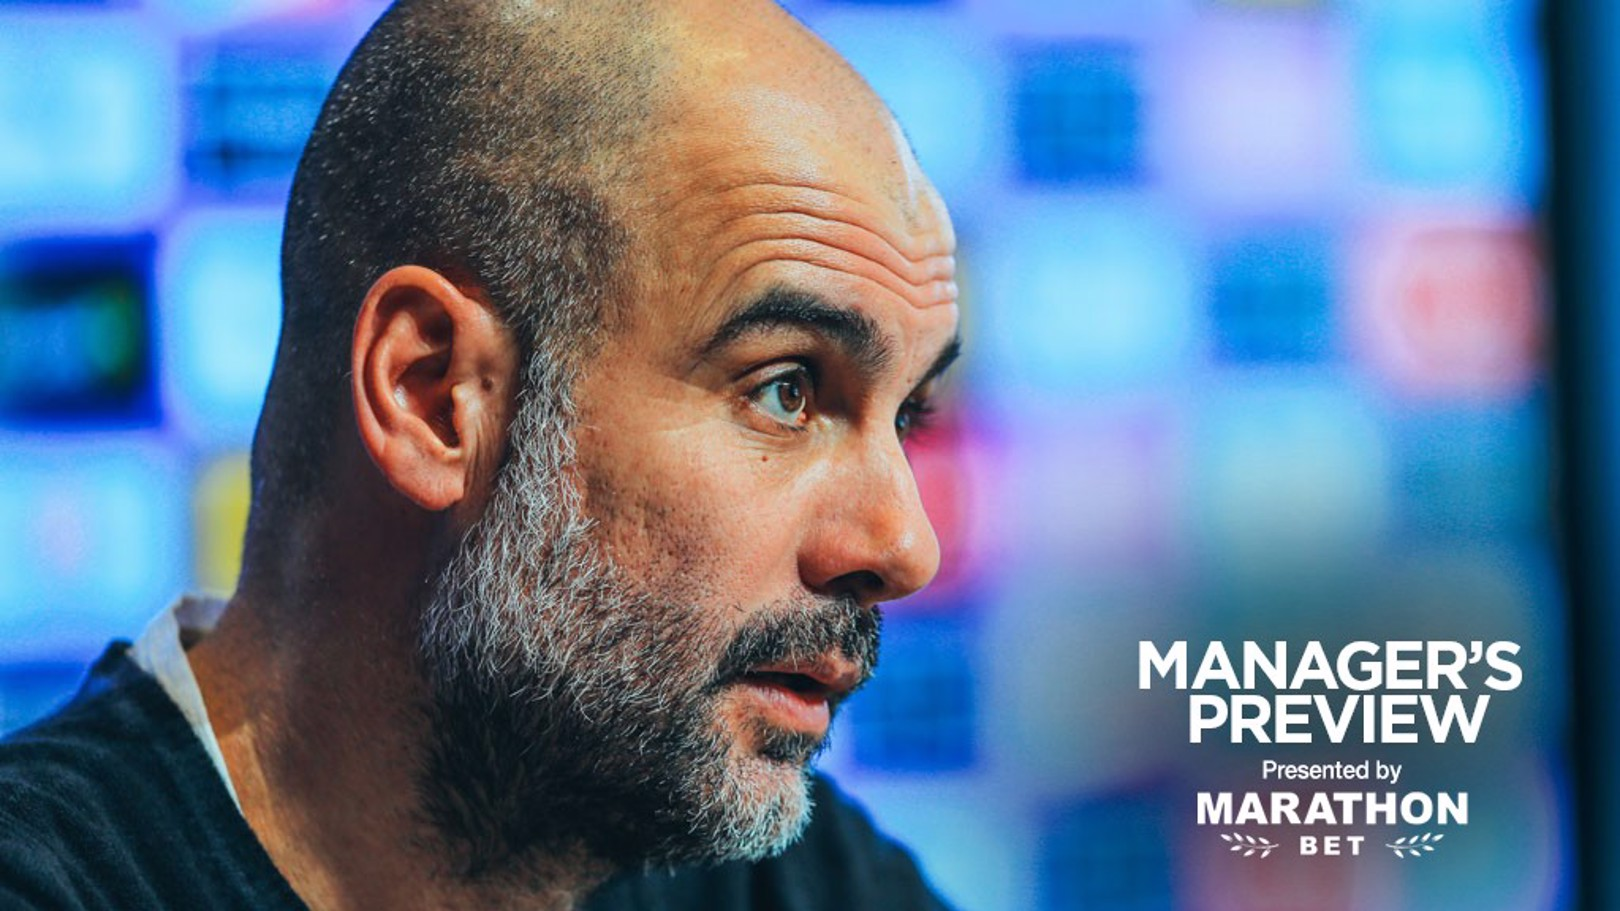 PREVIEW: Pep Guardiola speaks to the press ahead of City's Carabao Cup second leg against Manchester United.